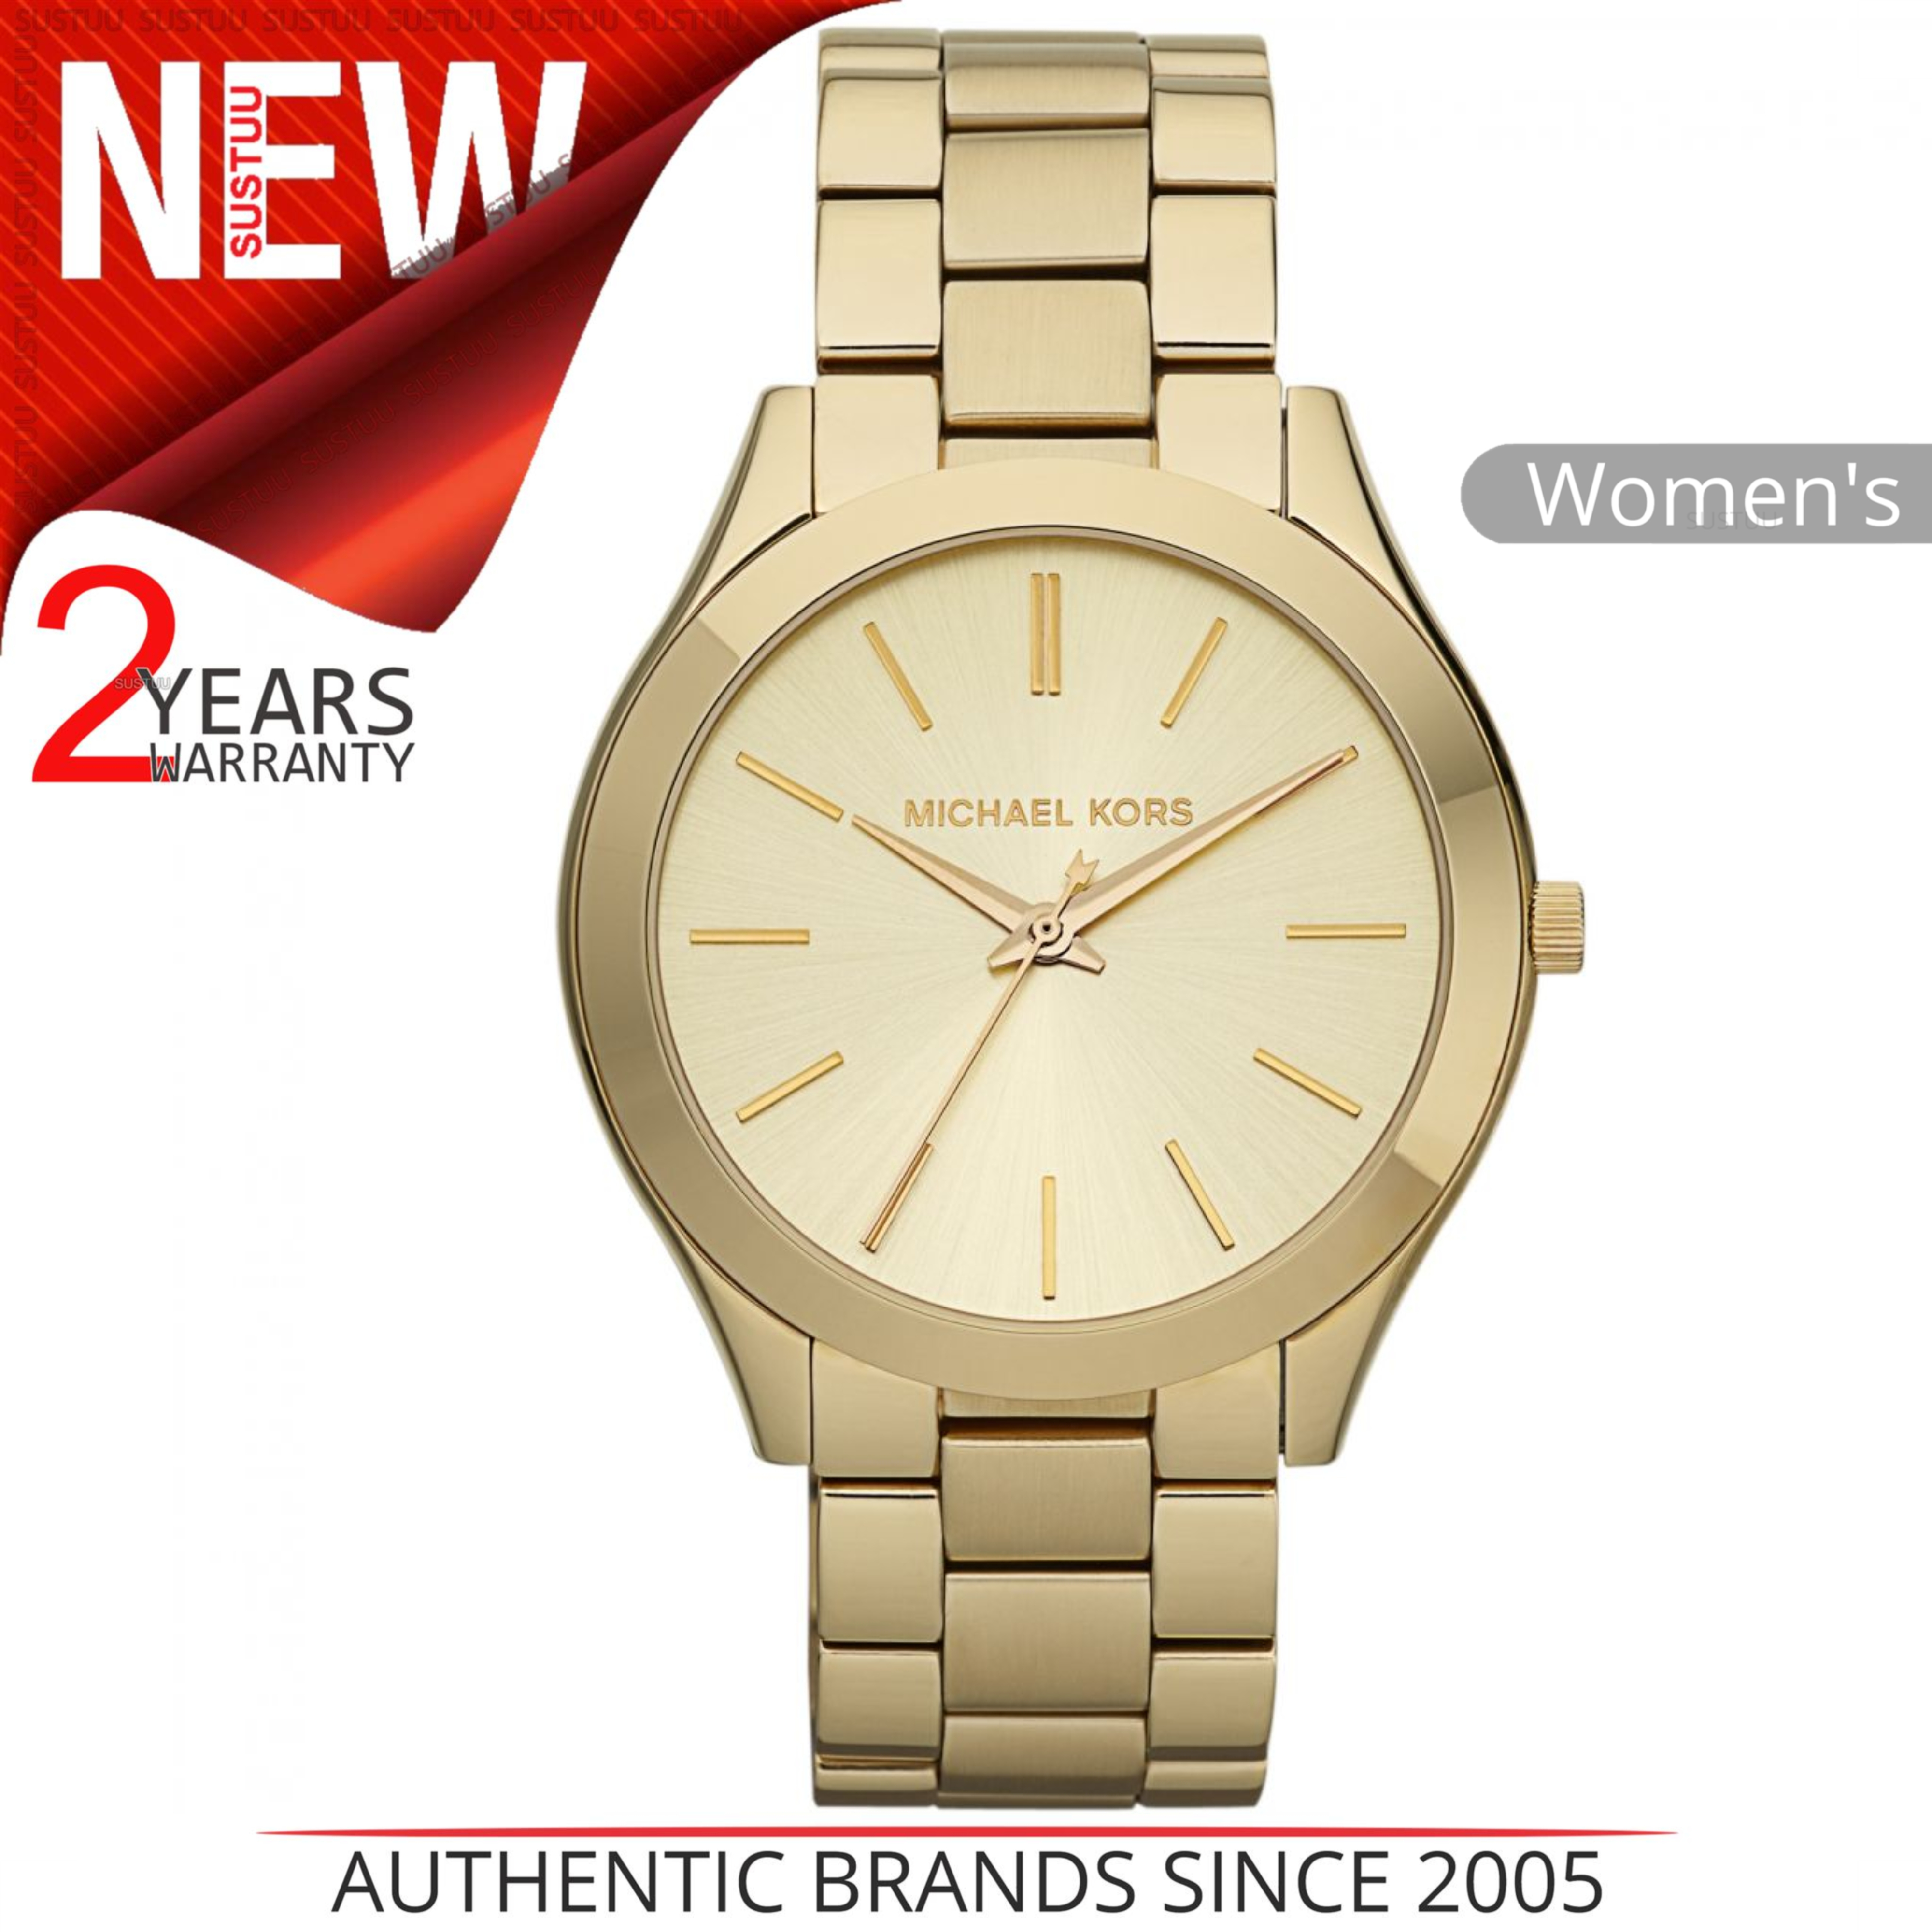 48b8ae8acbb1 Details about Michael Kors Runway Ladies  Watch MK3179│Round Champagne Dial│Gold  Tone Bracelet